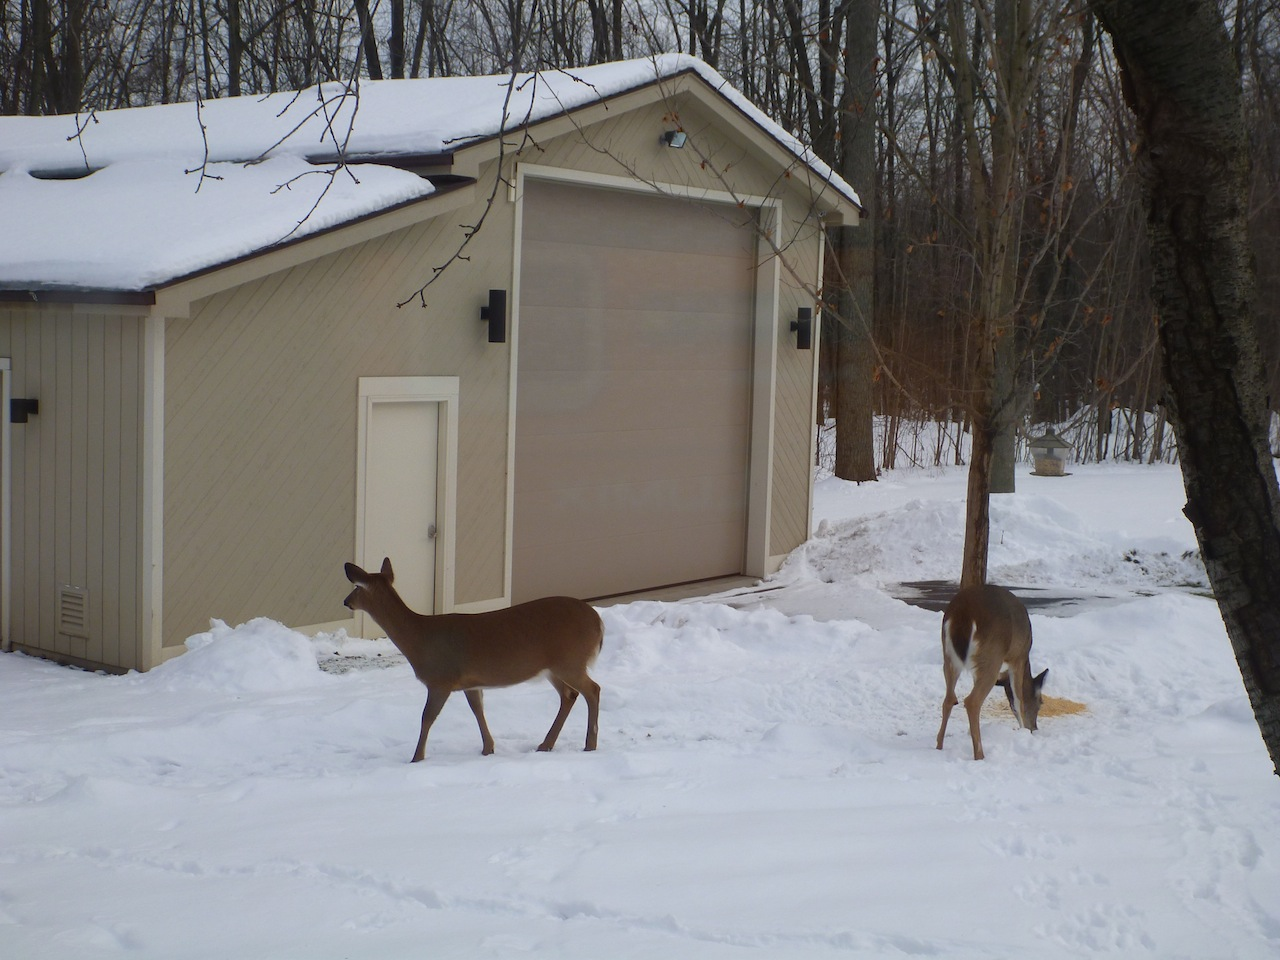 Deer Eating Some Cracked Corn Outside Our Motorhome Garage.